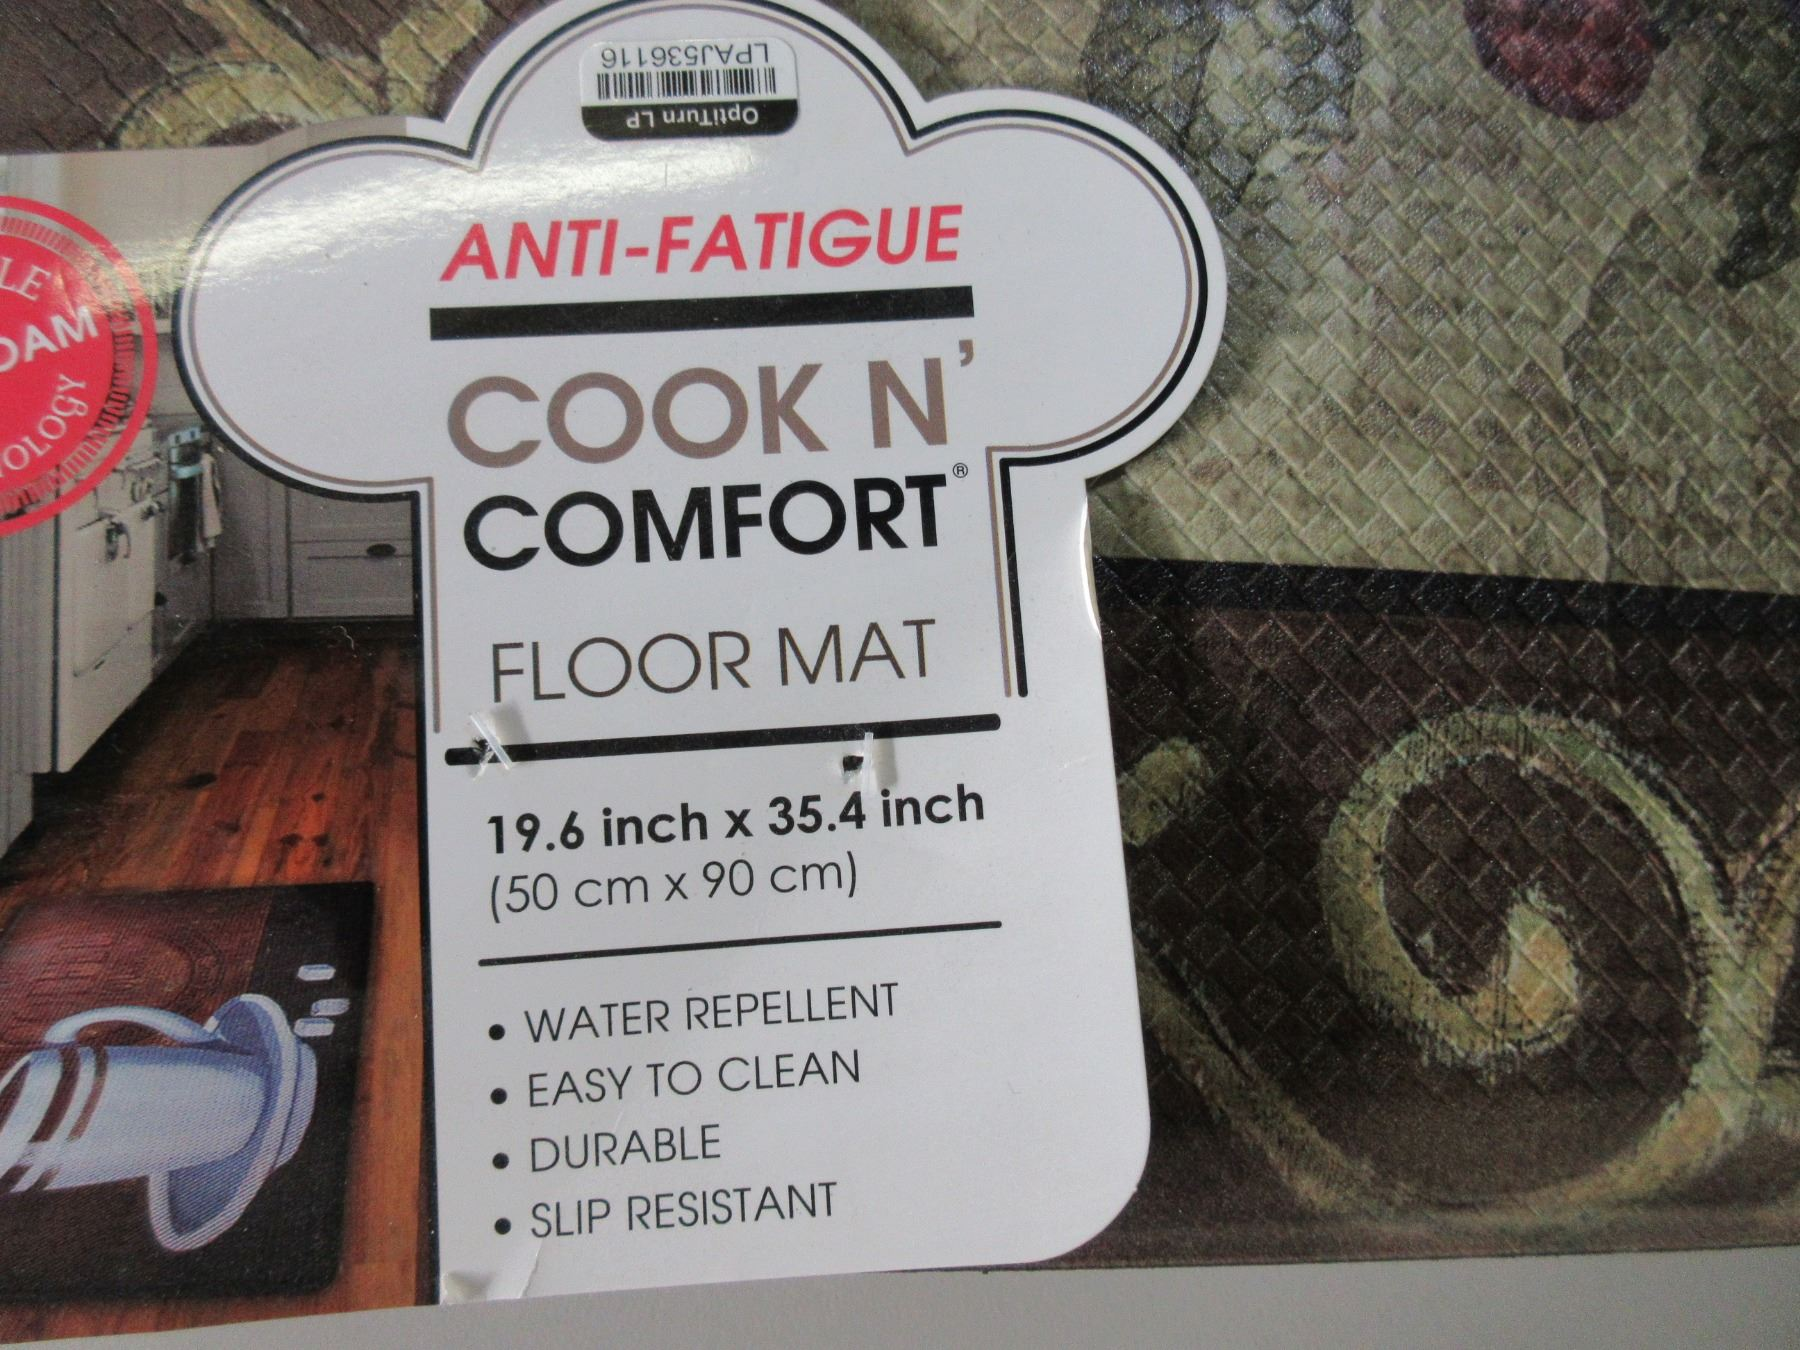 New Anti Fatigue Mat Cook In Comfort 19 6 X 35 4 Inch Easy To Clean